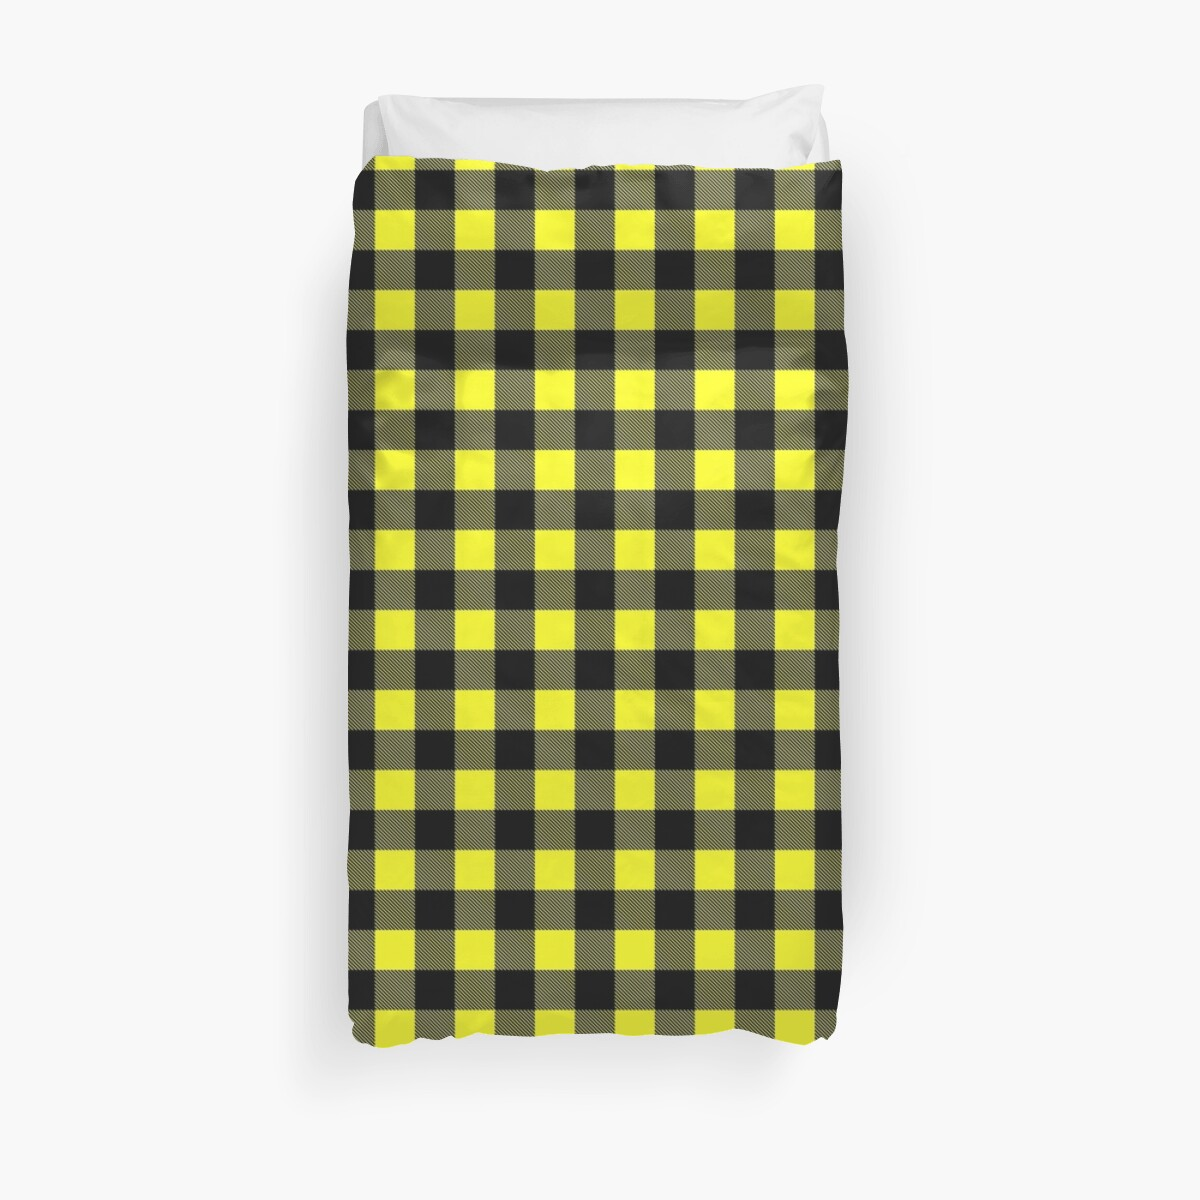 Quot Buffalo Plaid In Yellow And Black Quot Duvet Covers By